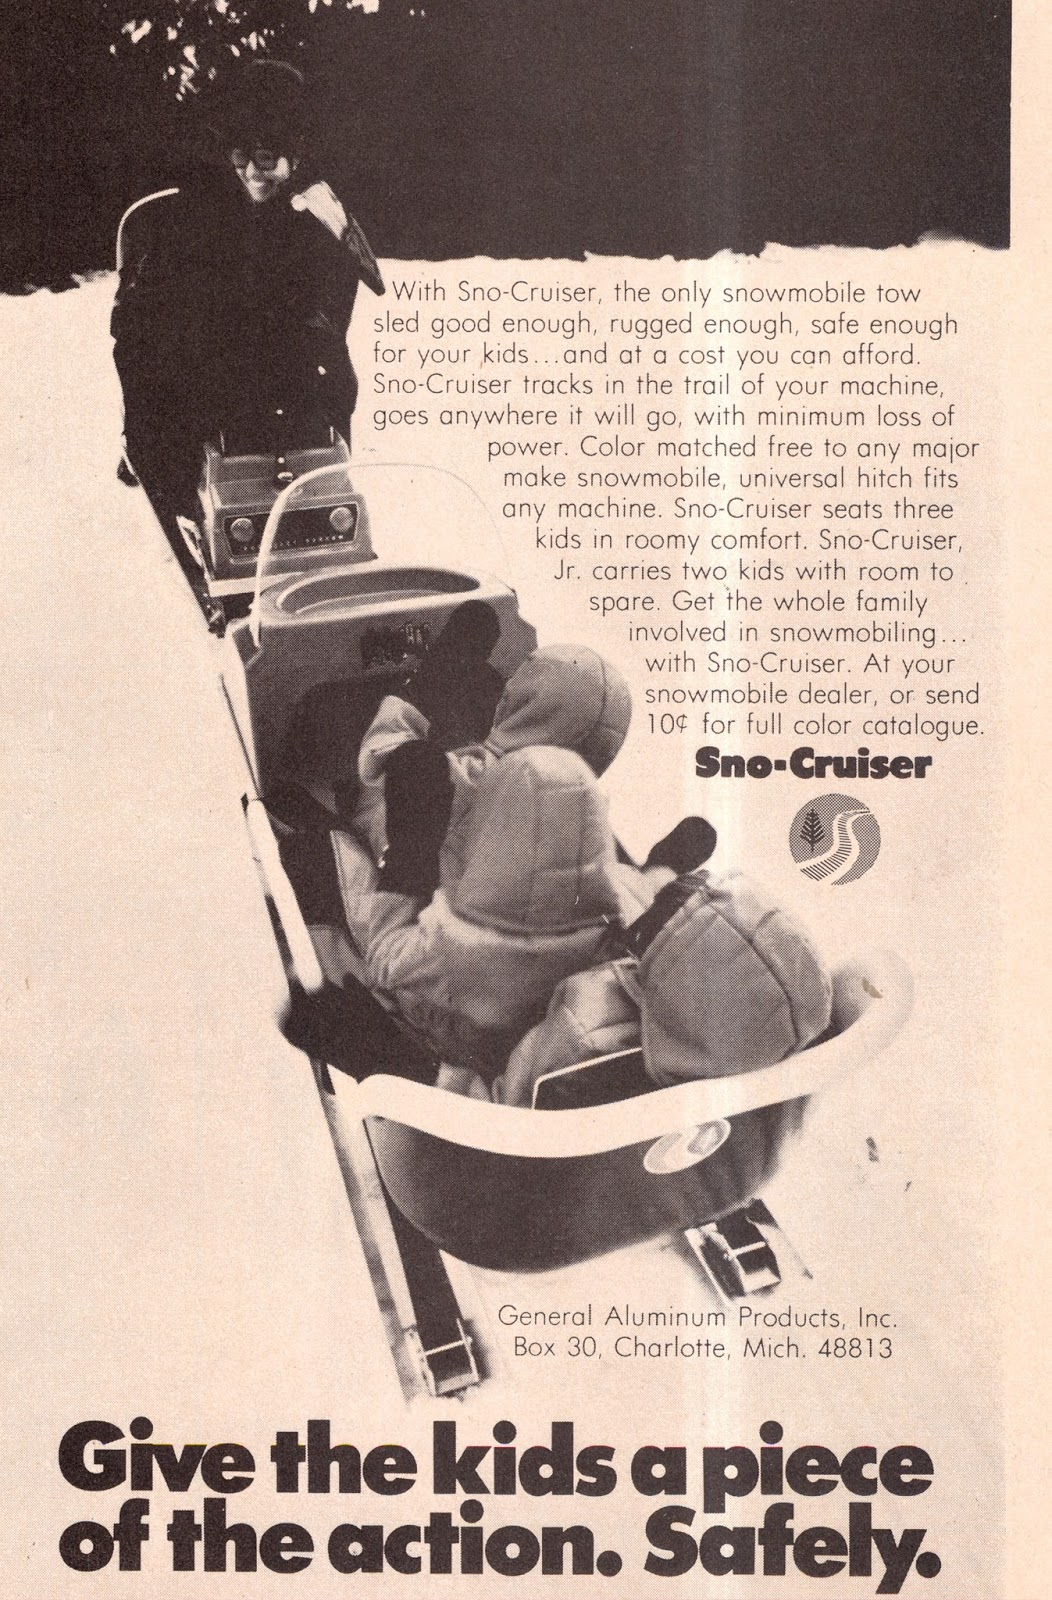 CLASSIC SNOWMOBILES OF THE PAST: 1972 SNO-CRUISER TOW SLED